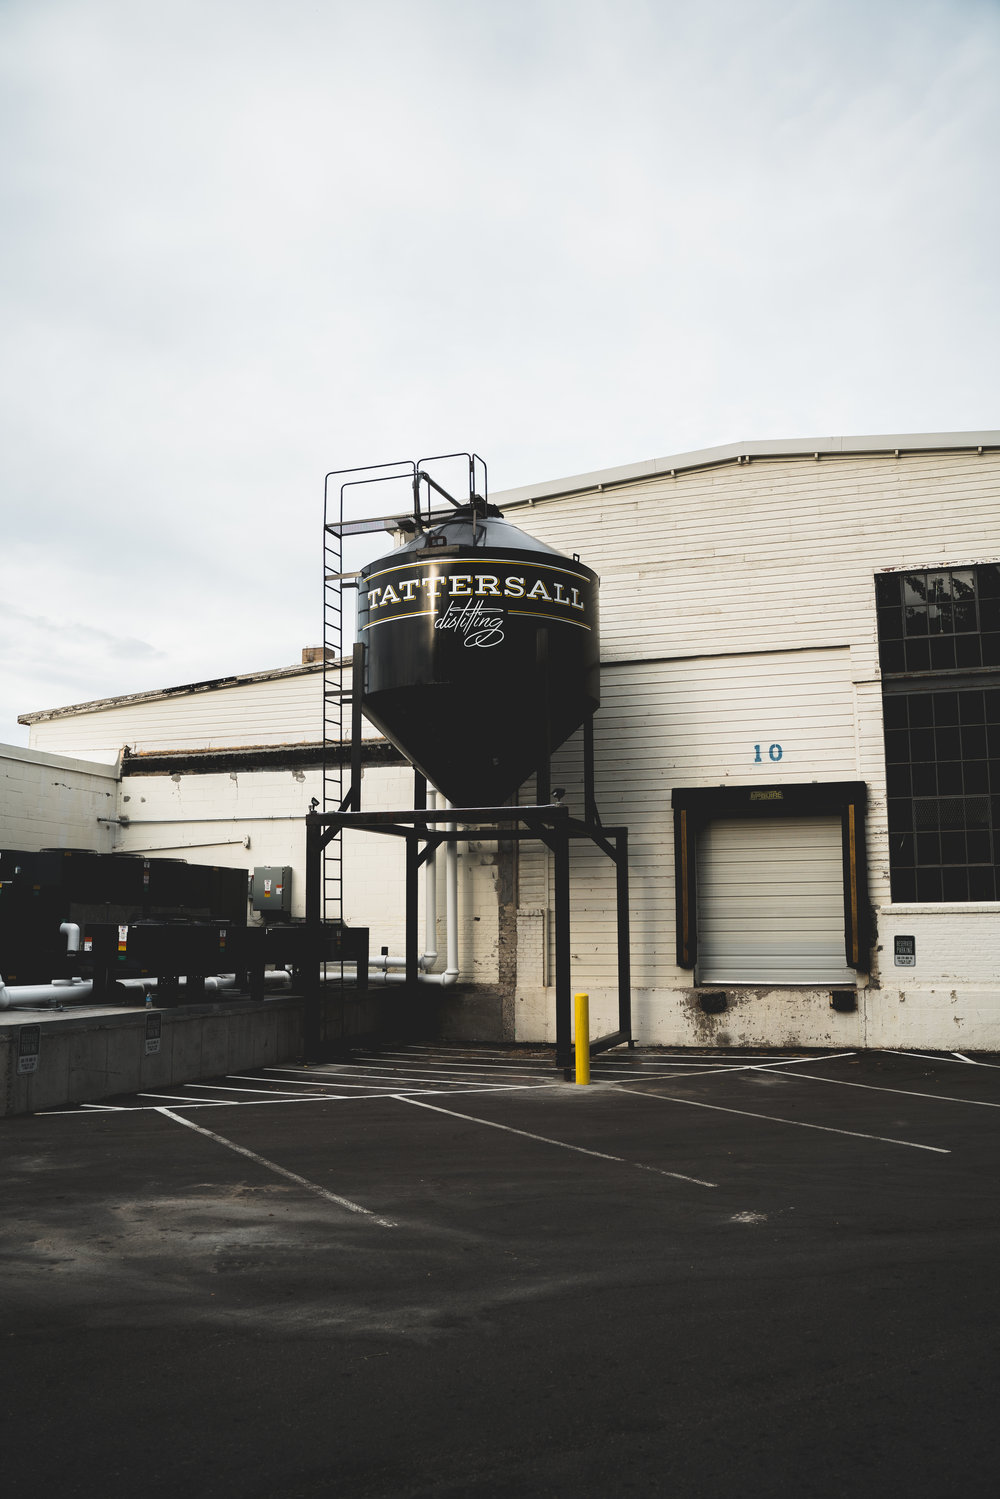 TATTERSALL DISTILLING